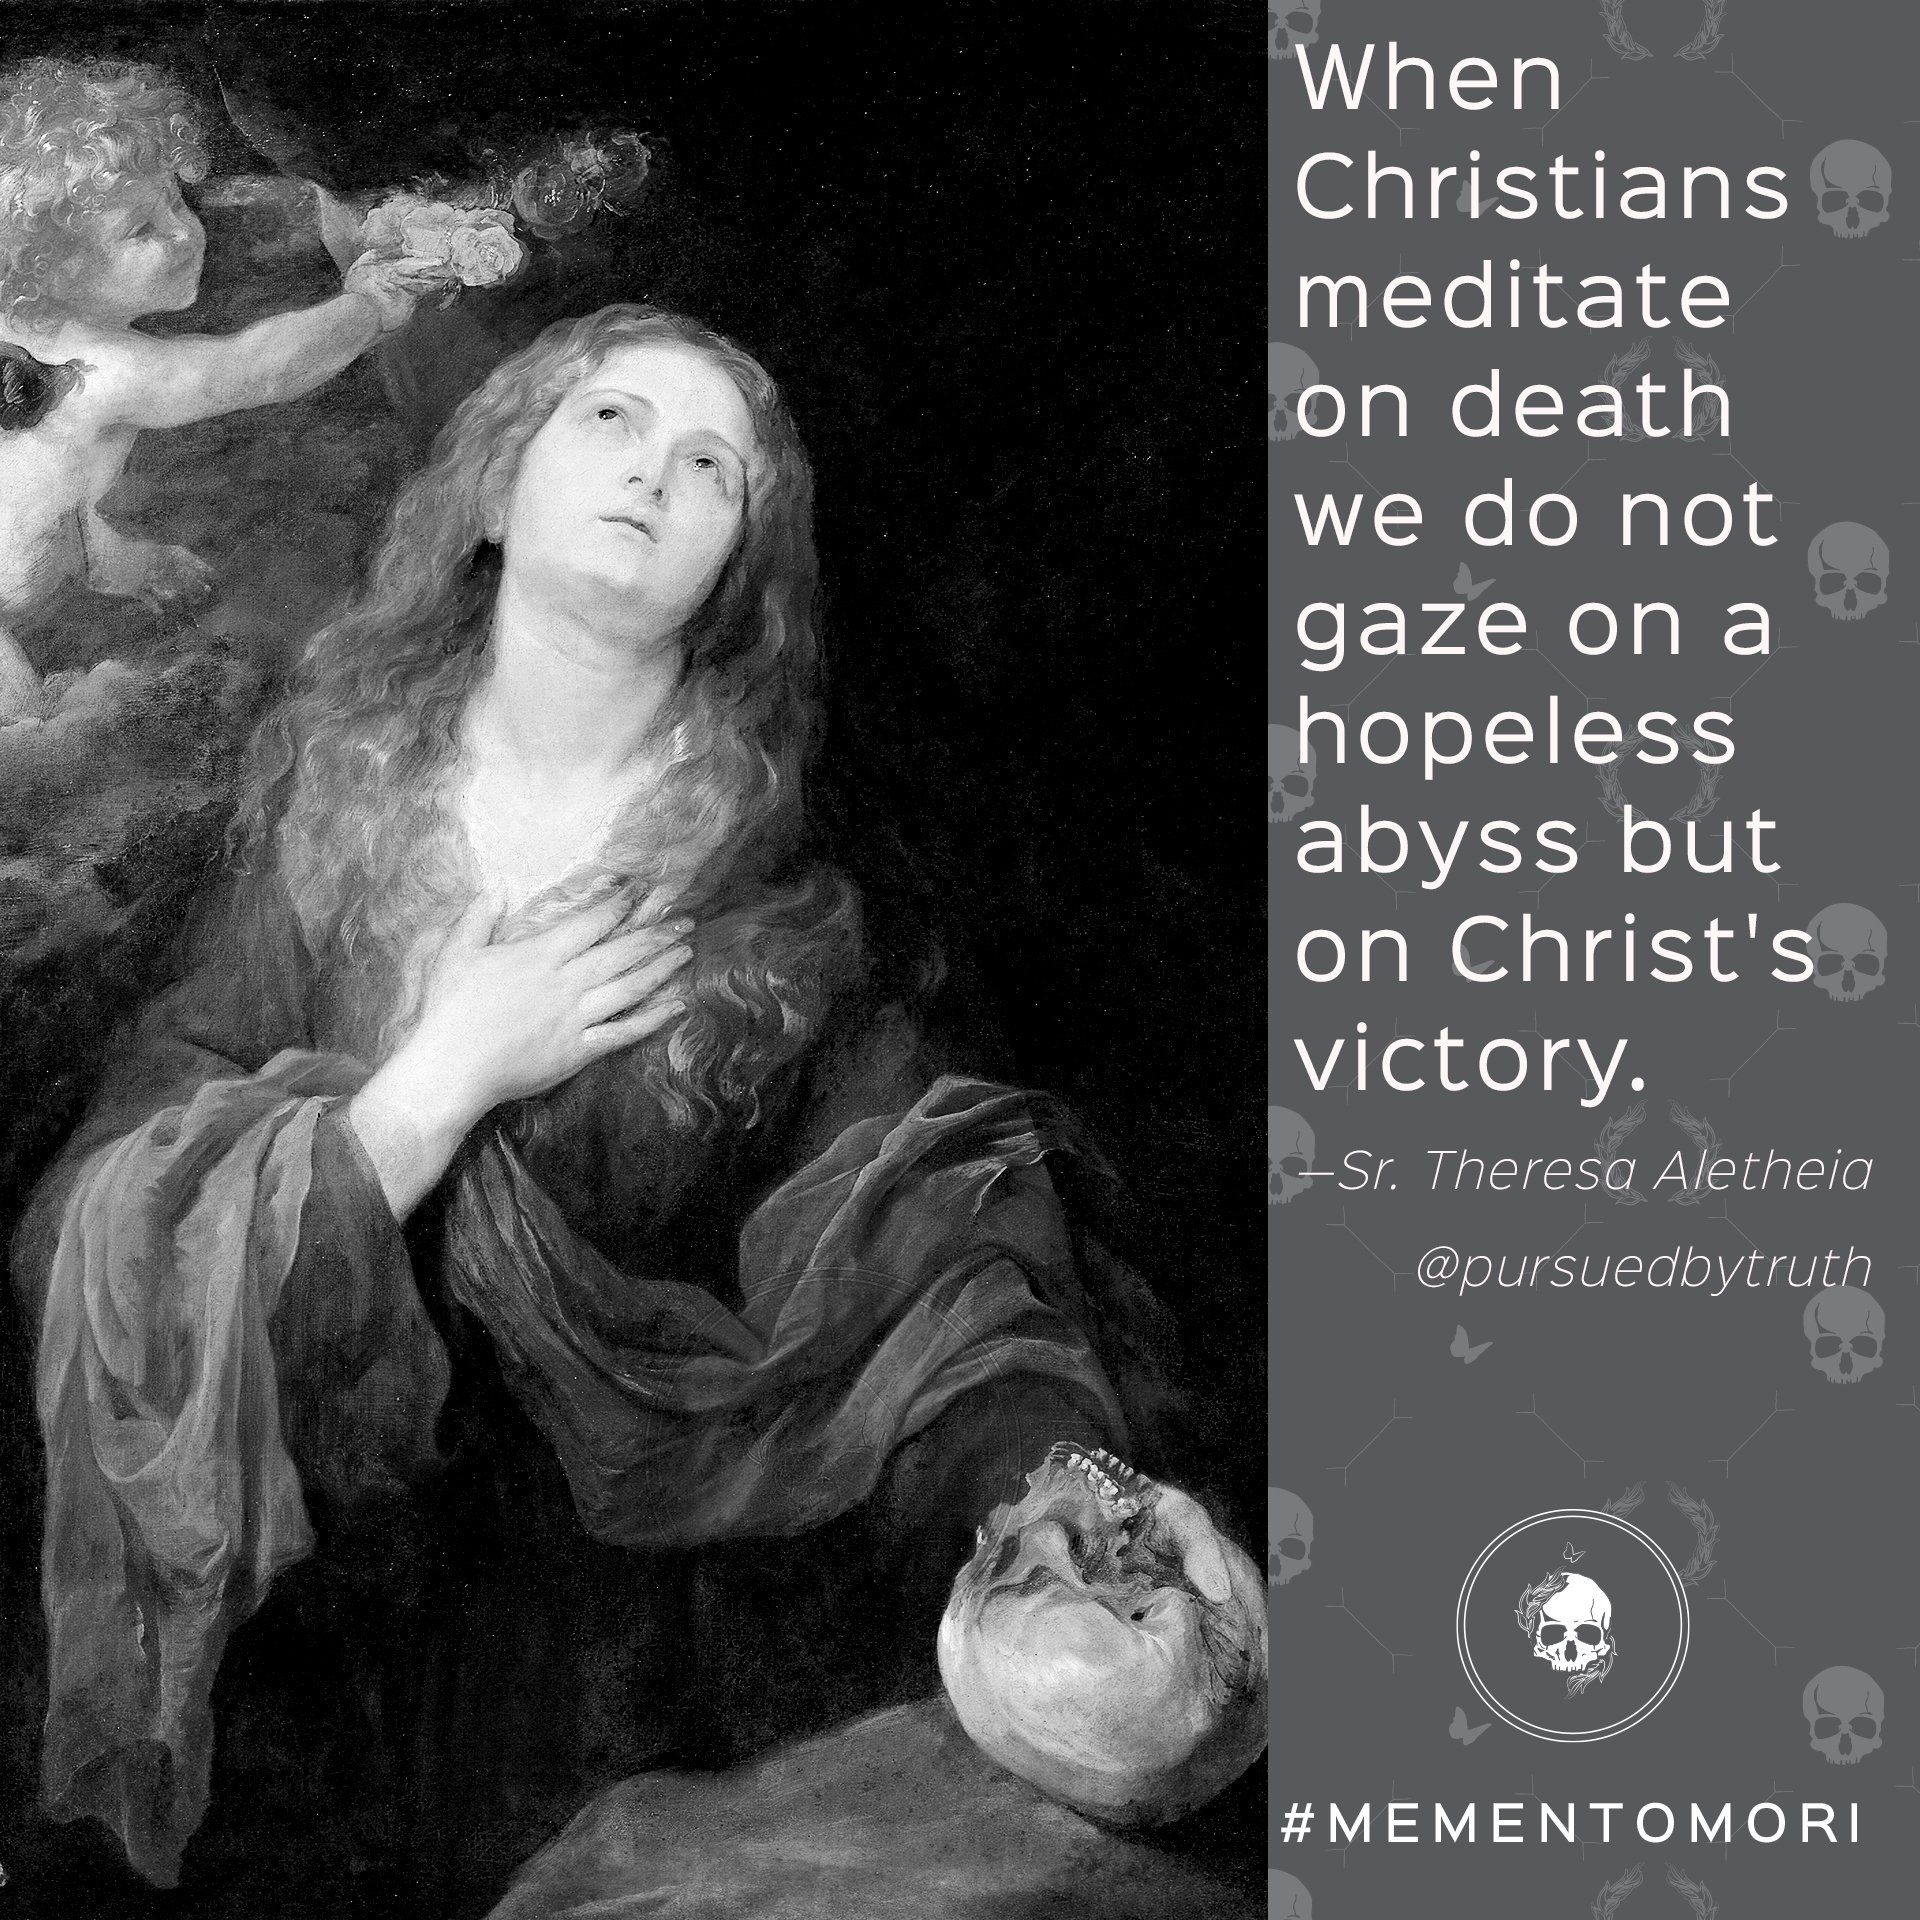 Pin by Maryanne on St Teresa of Avila (With images